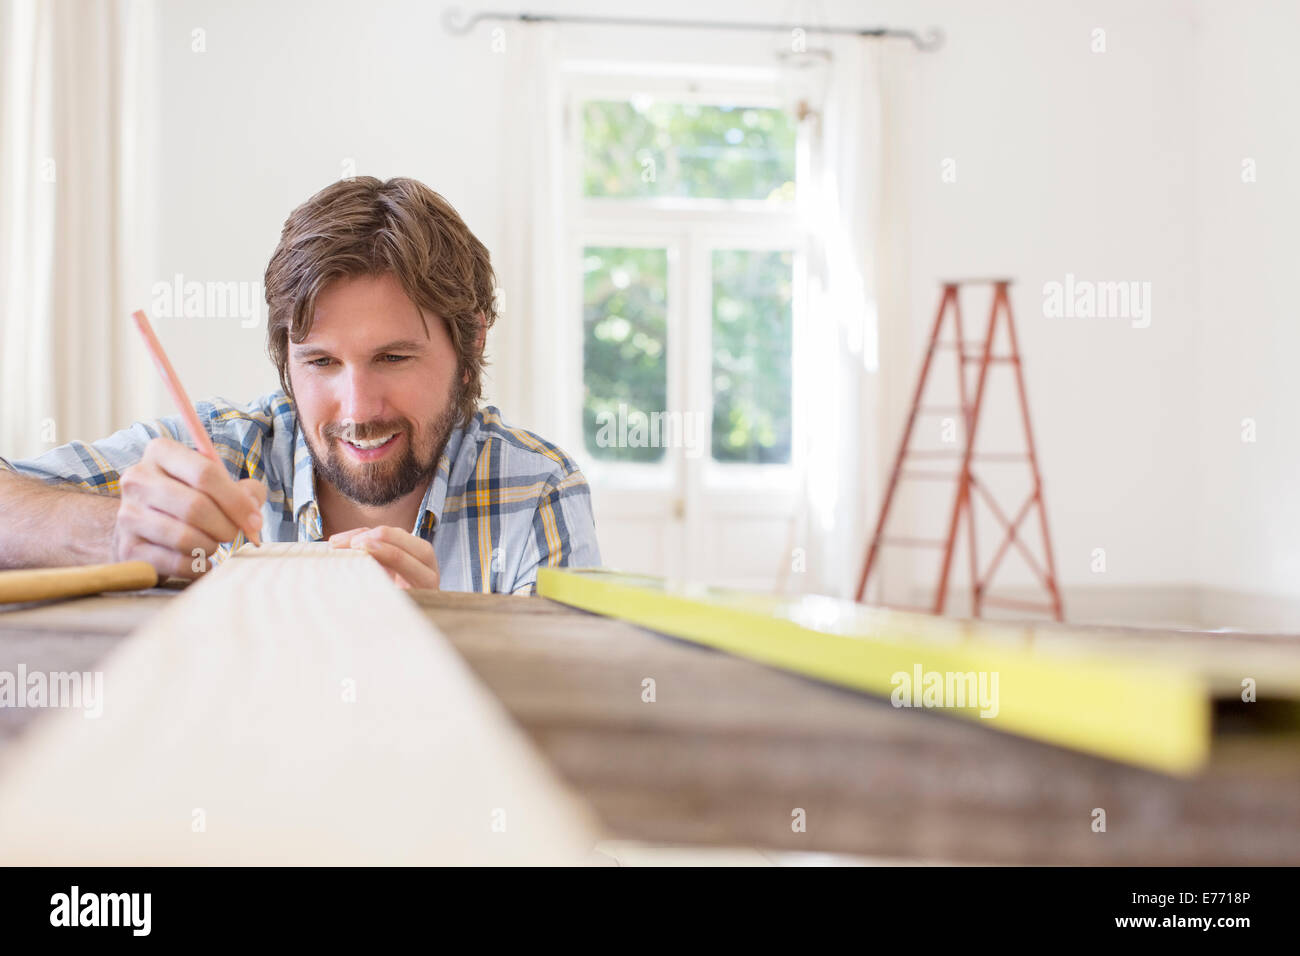 Man marking wood in living area - Stock Image